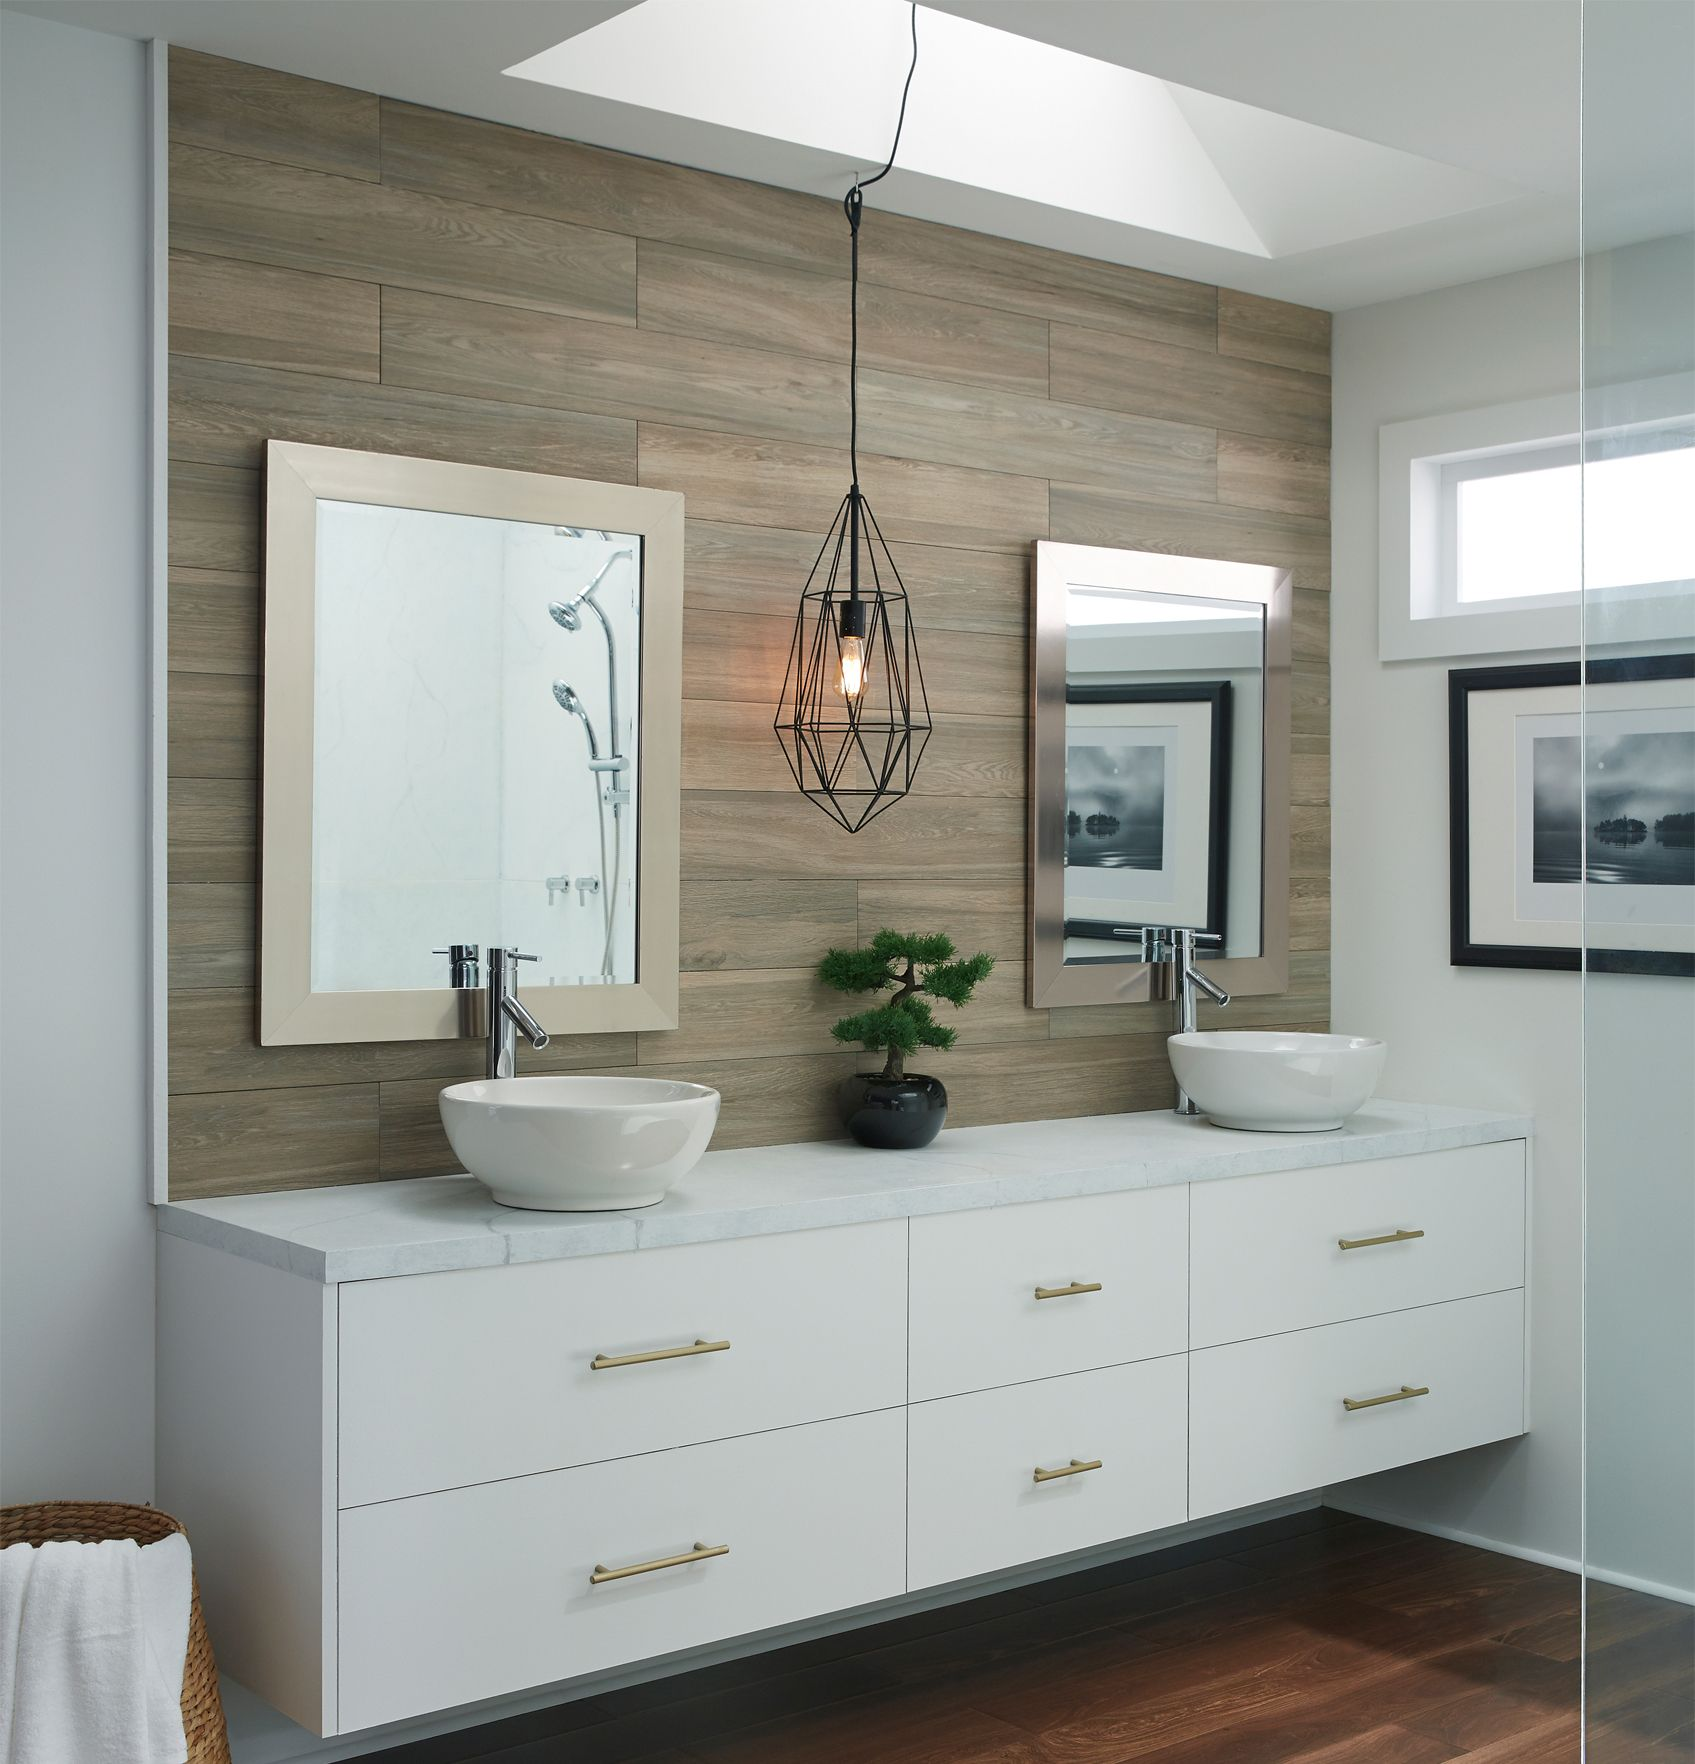 Easy Bathroom Upgrade That Accent Wall Is Cottage Wood Ash Wood Look Tile Wood Look Tile Bathroom Wood Accent Wall Wood Wall Tiles